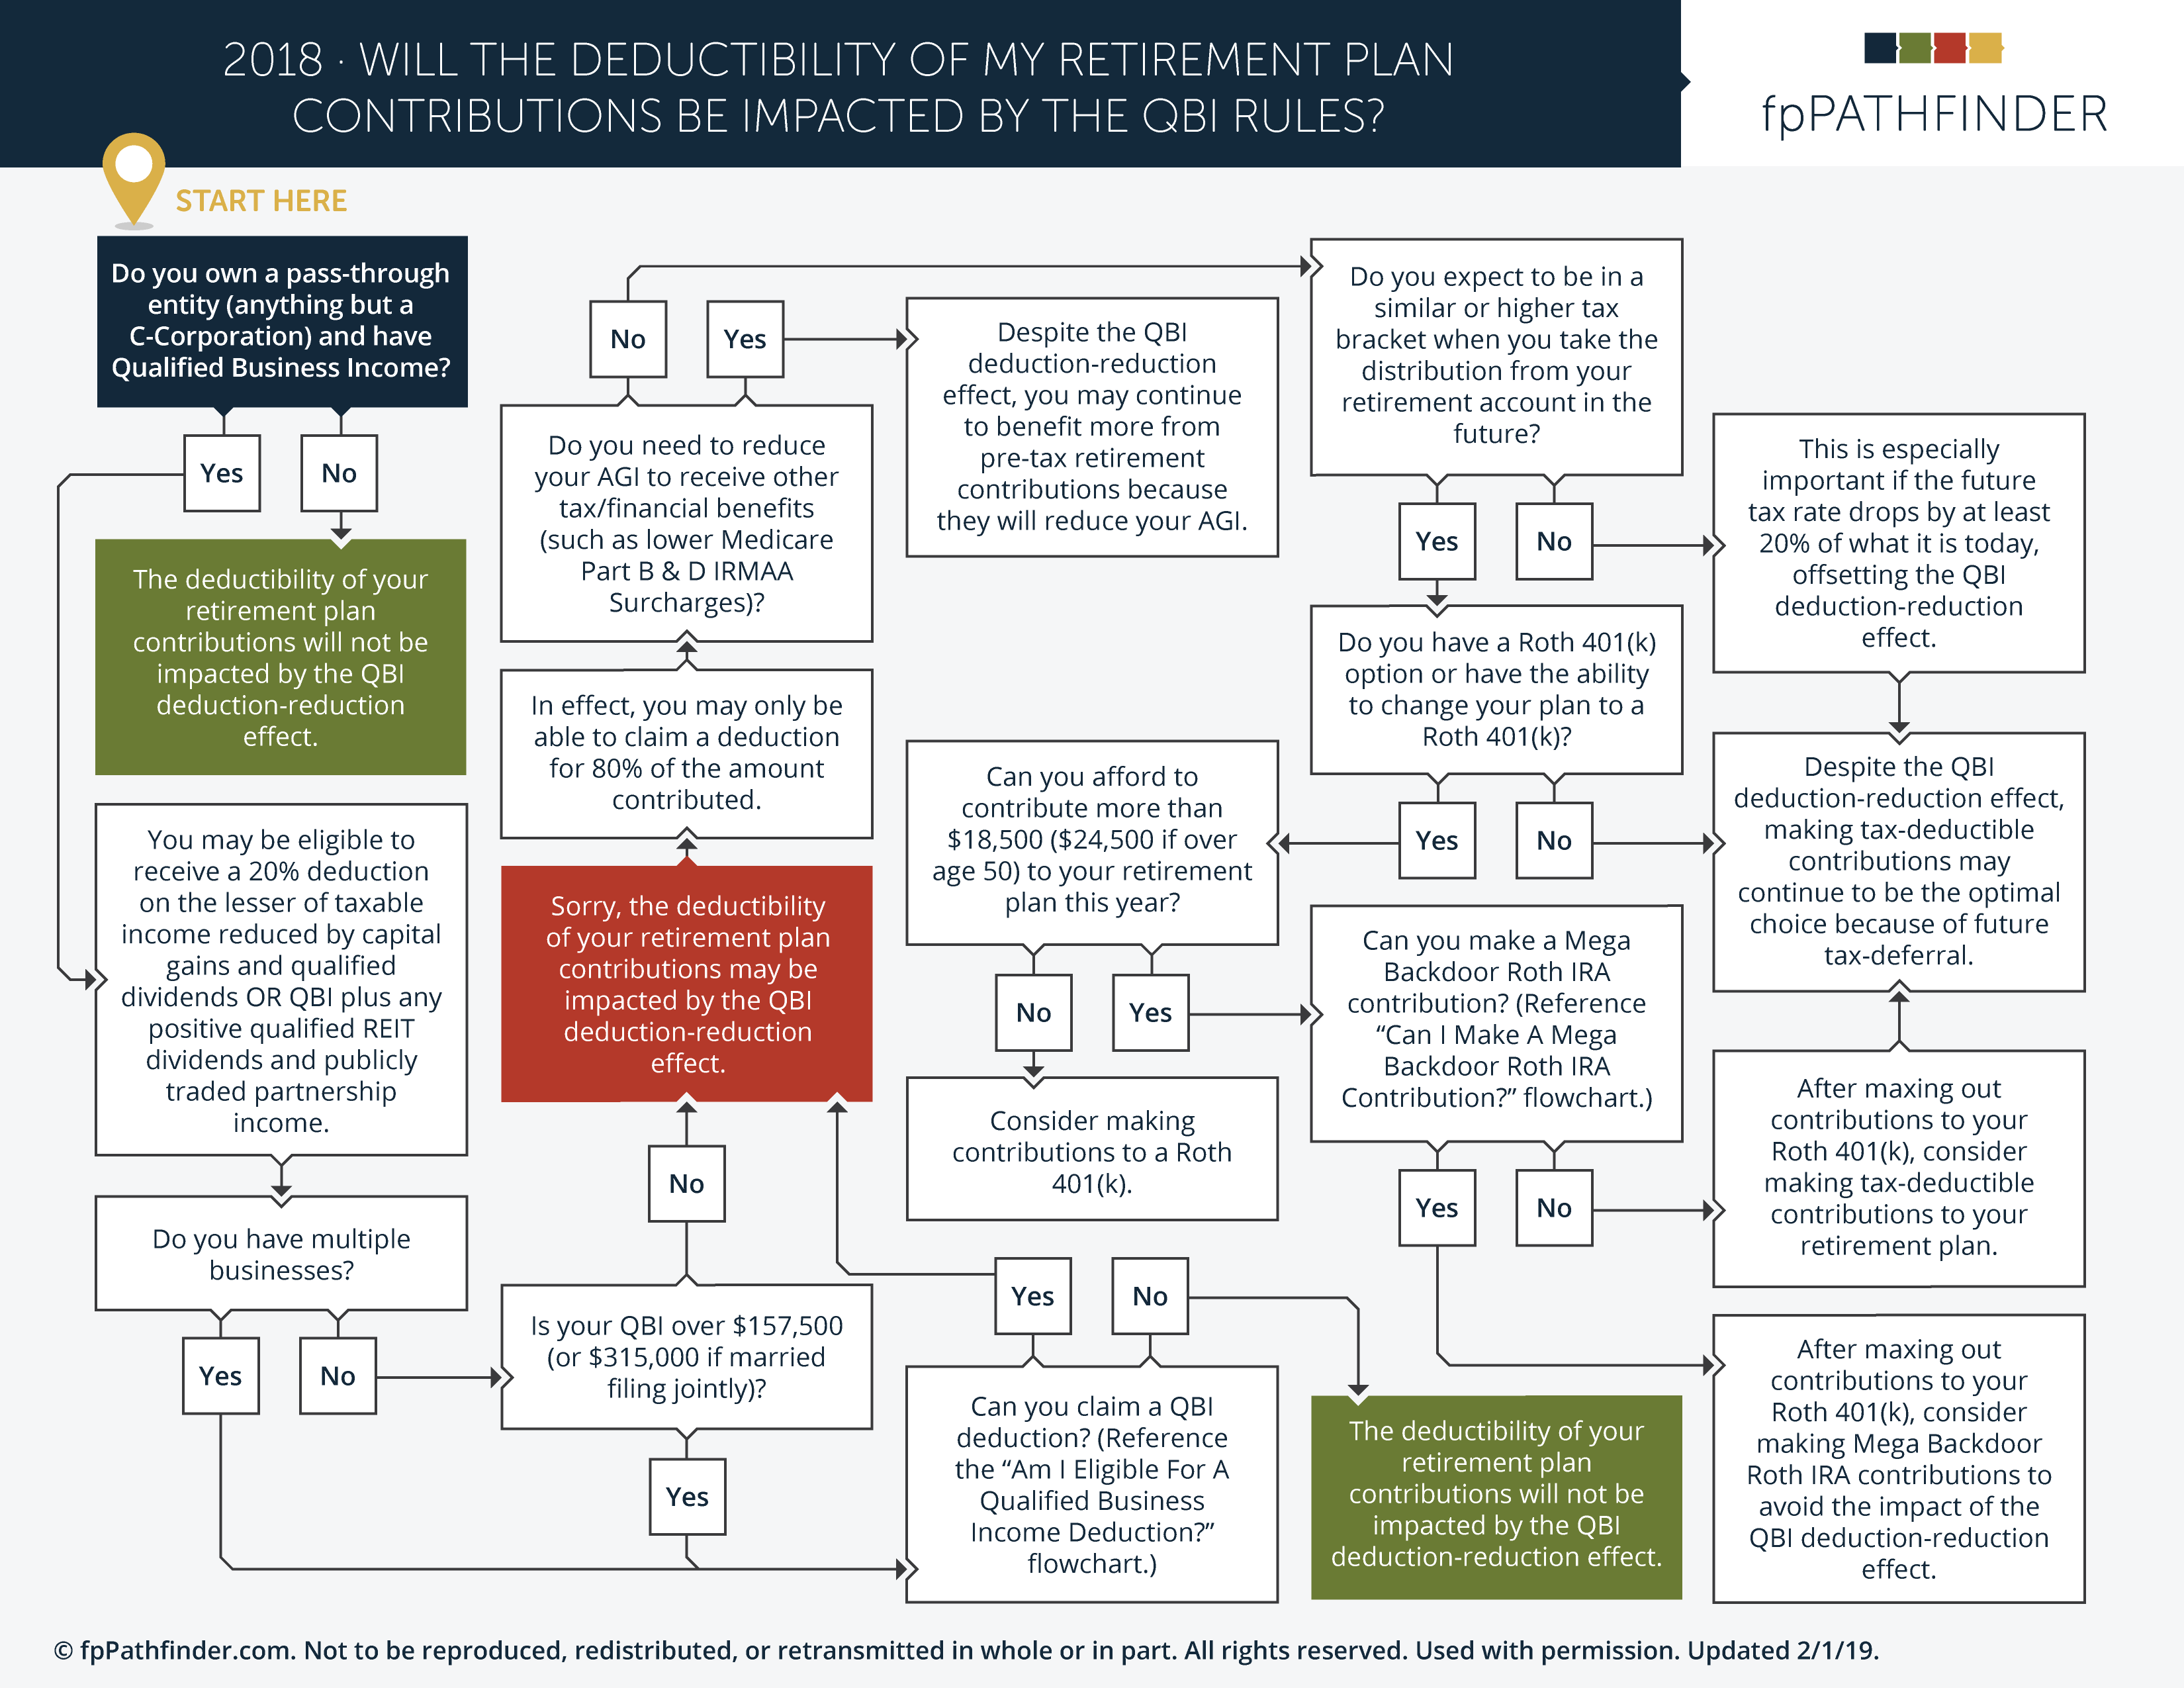 Will The Duductibility Of My Retirement Plan Contributions Be Impaceted By The QBI Rules